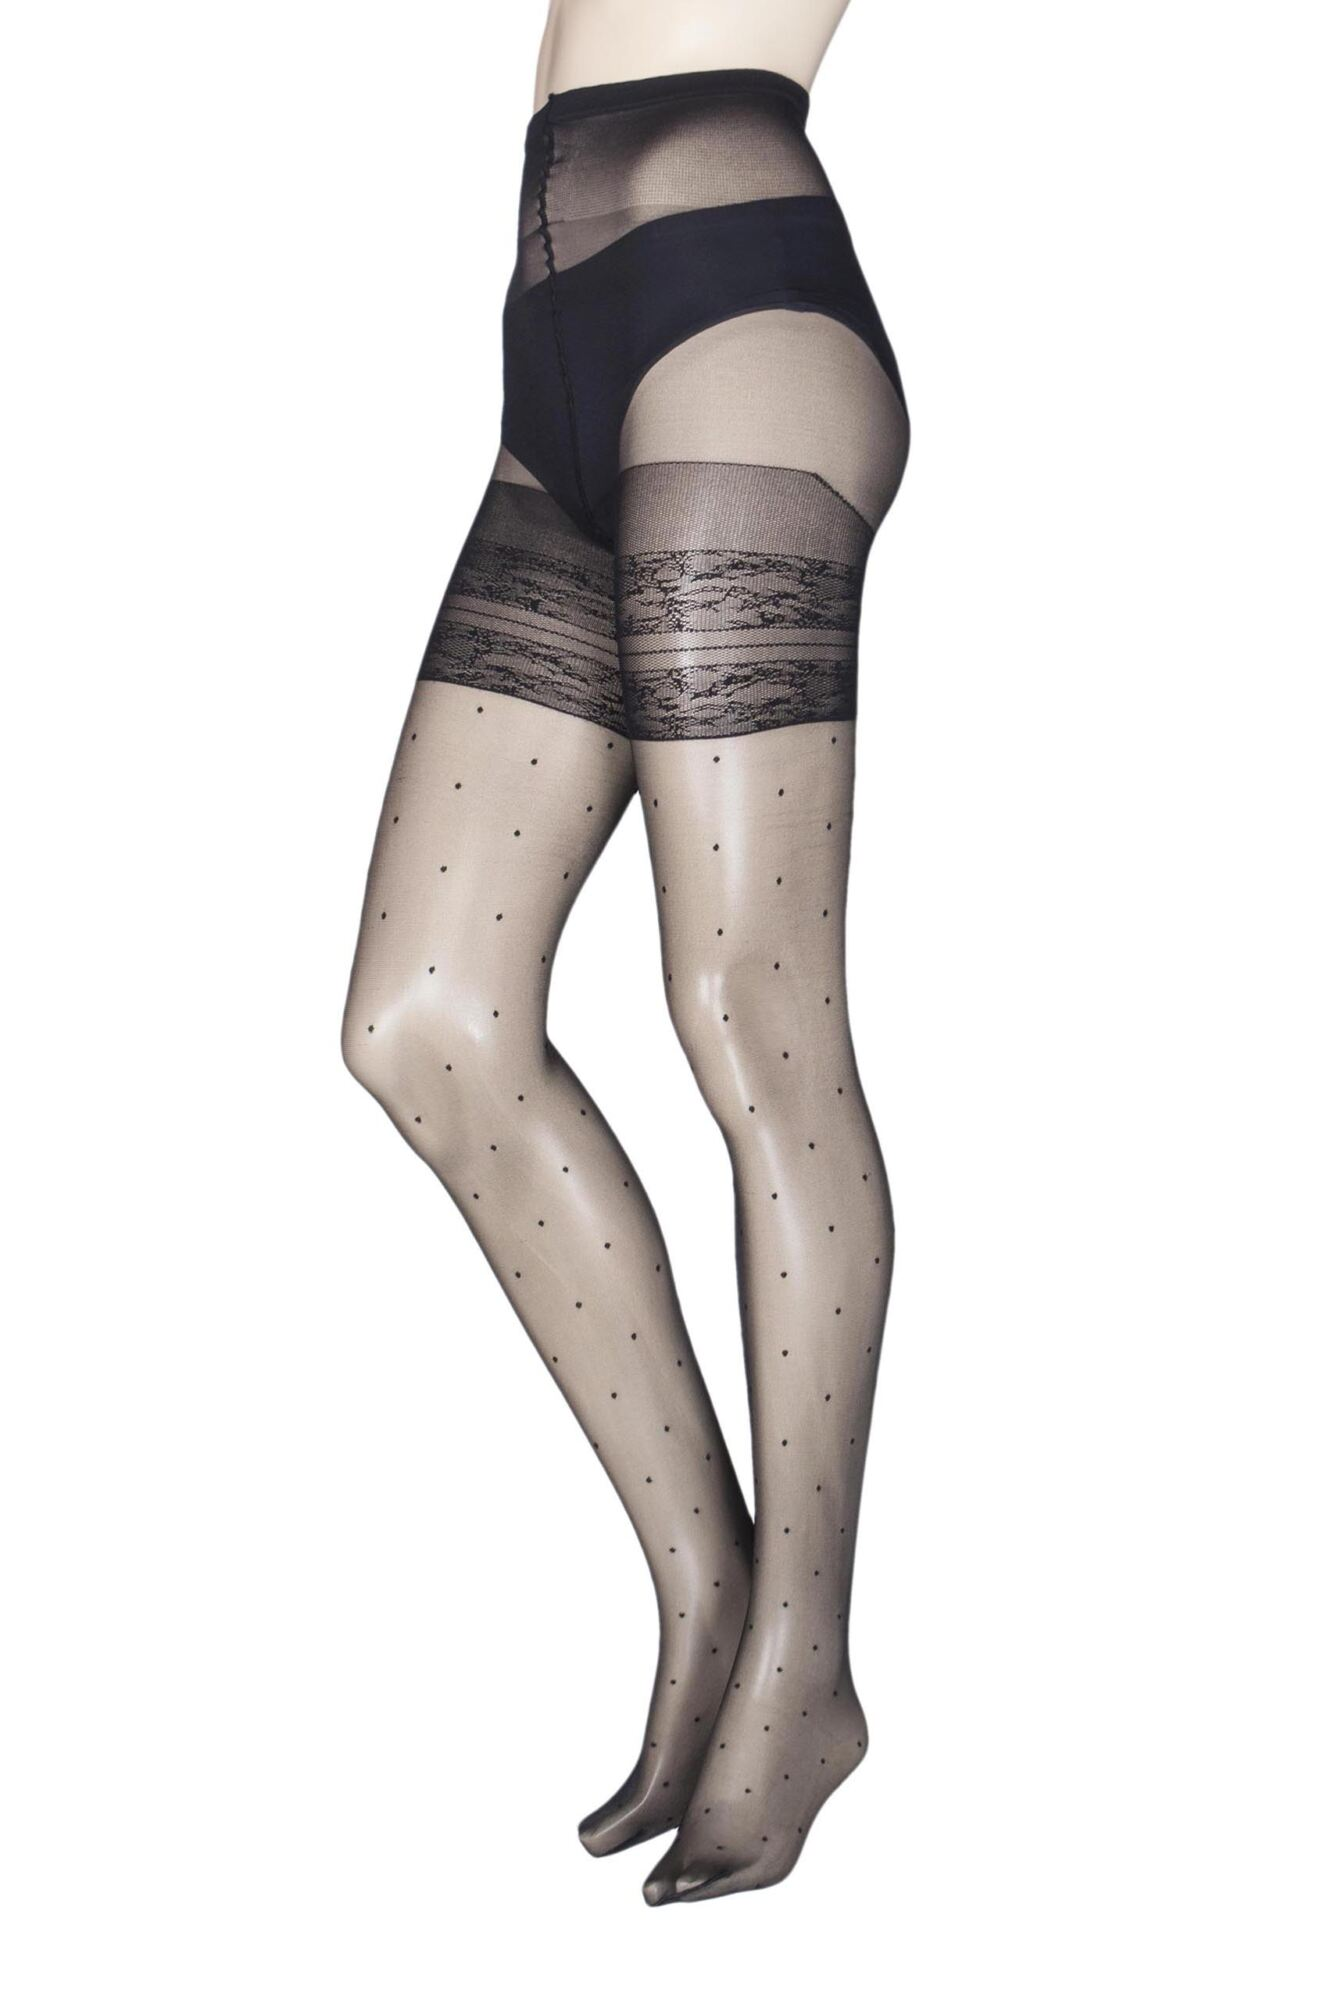 1 Pair Tamarindo Curvy Spotted Tights Ladies - Trasparenze